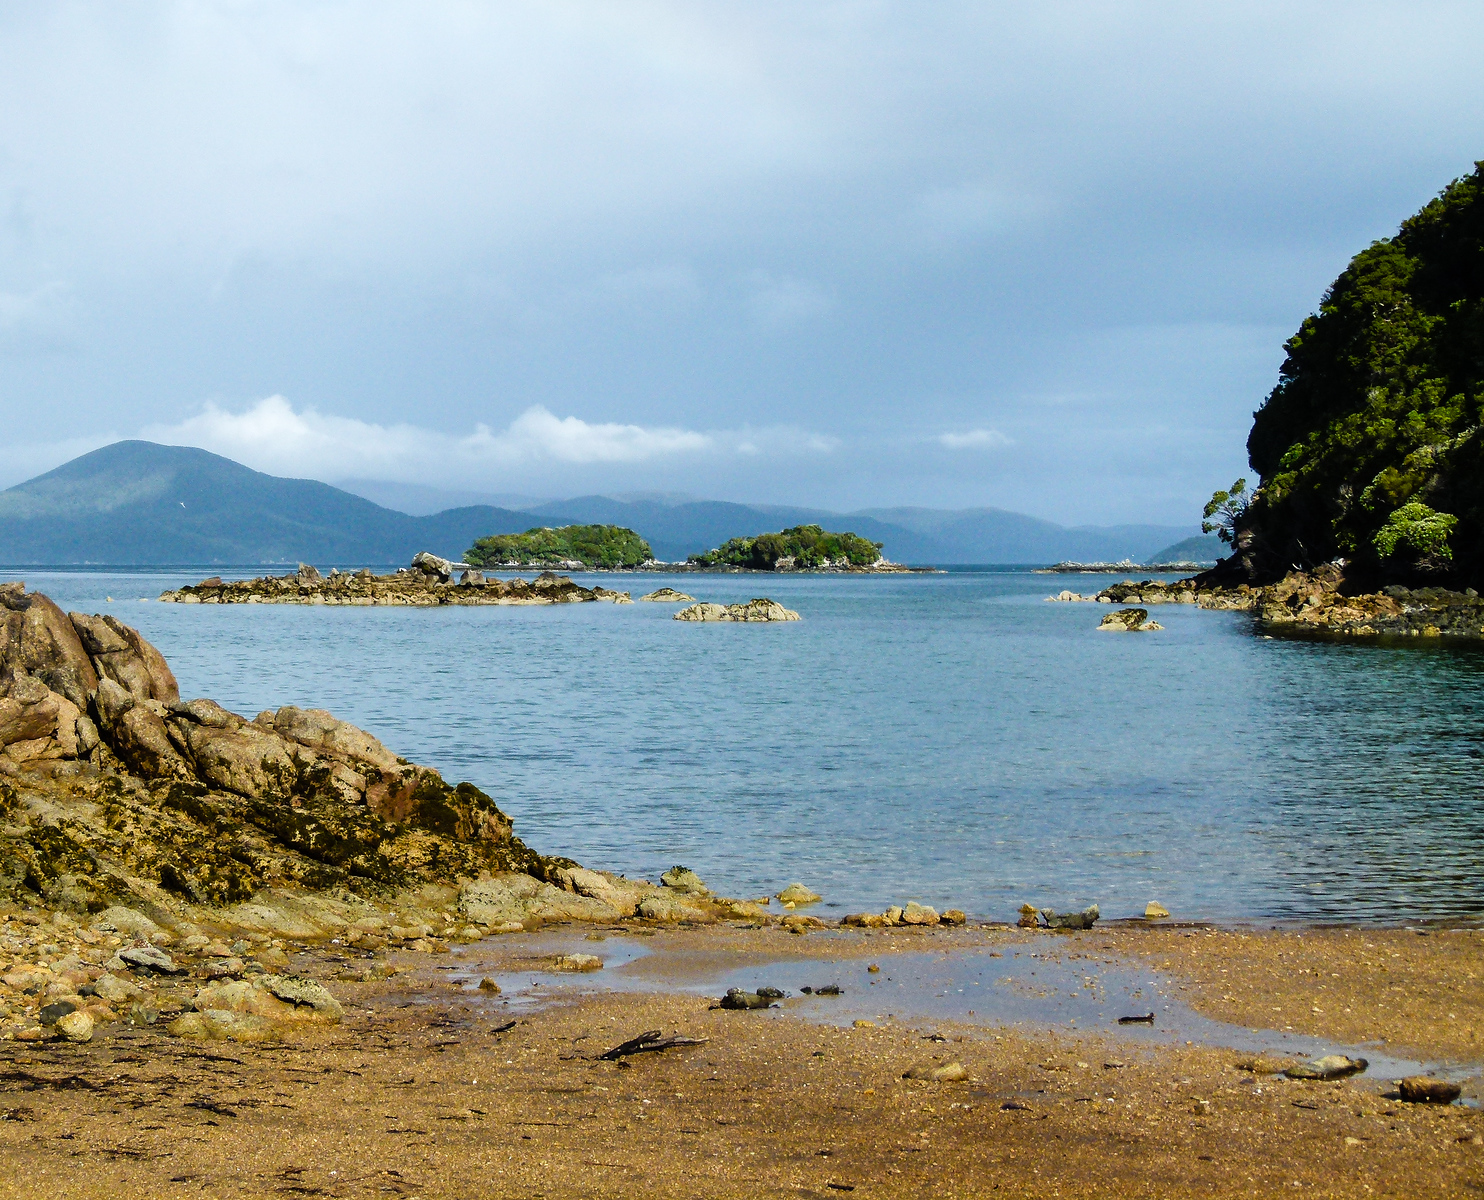 Golden-colored sand edges the blue bay water on an Ulva Island beach.